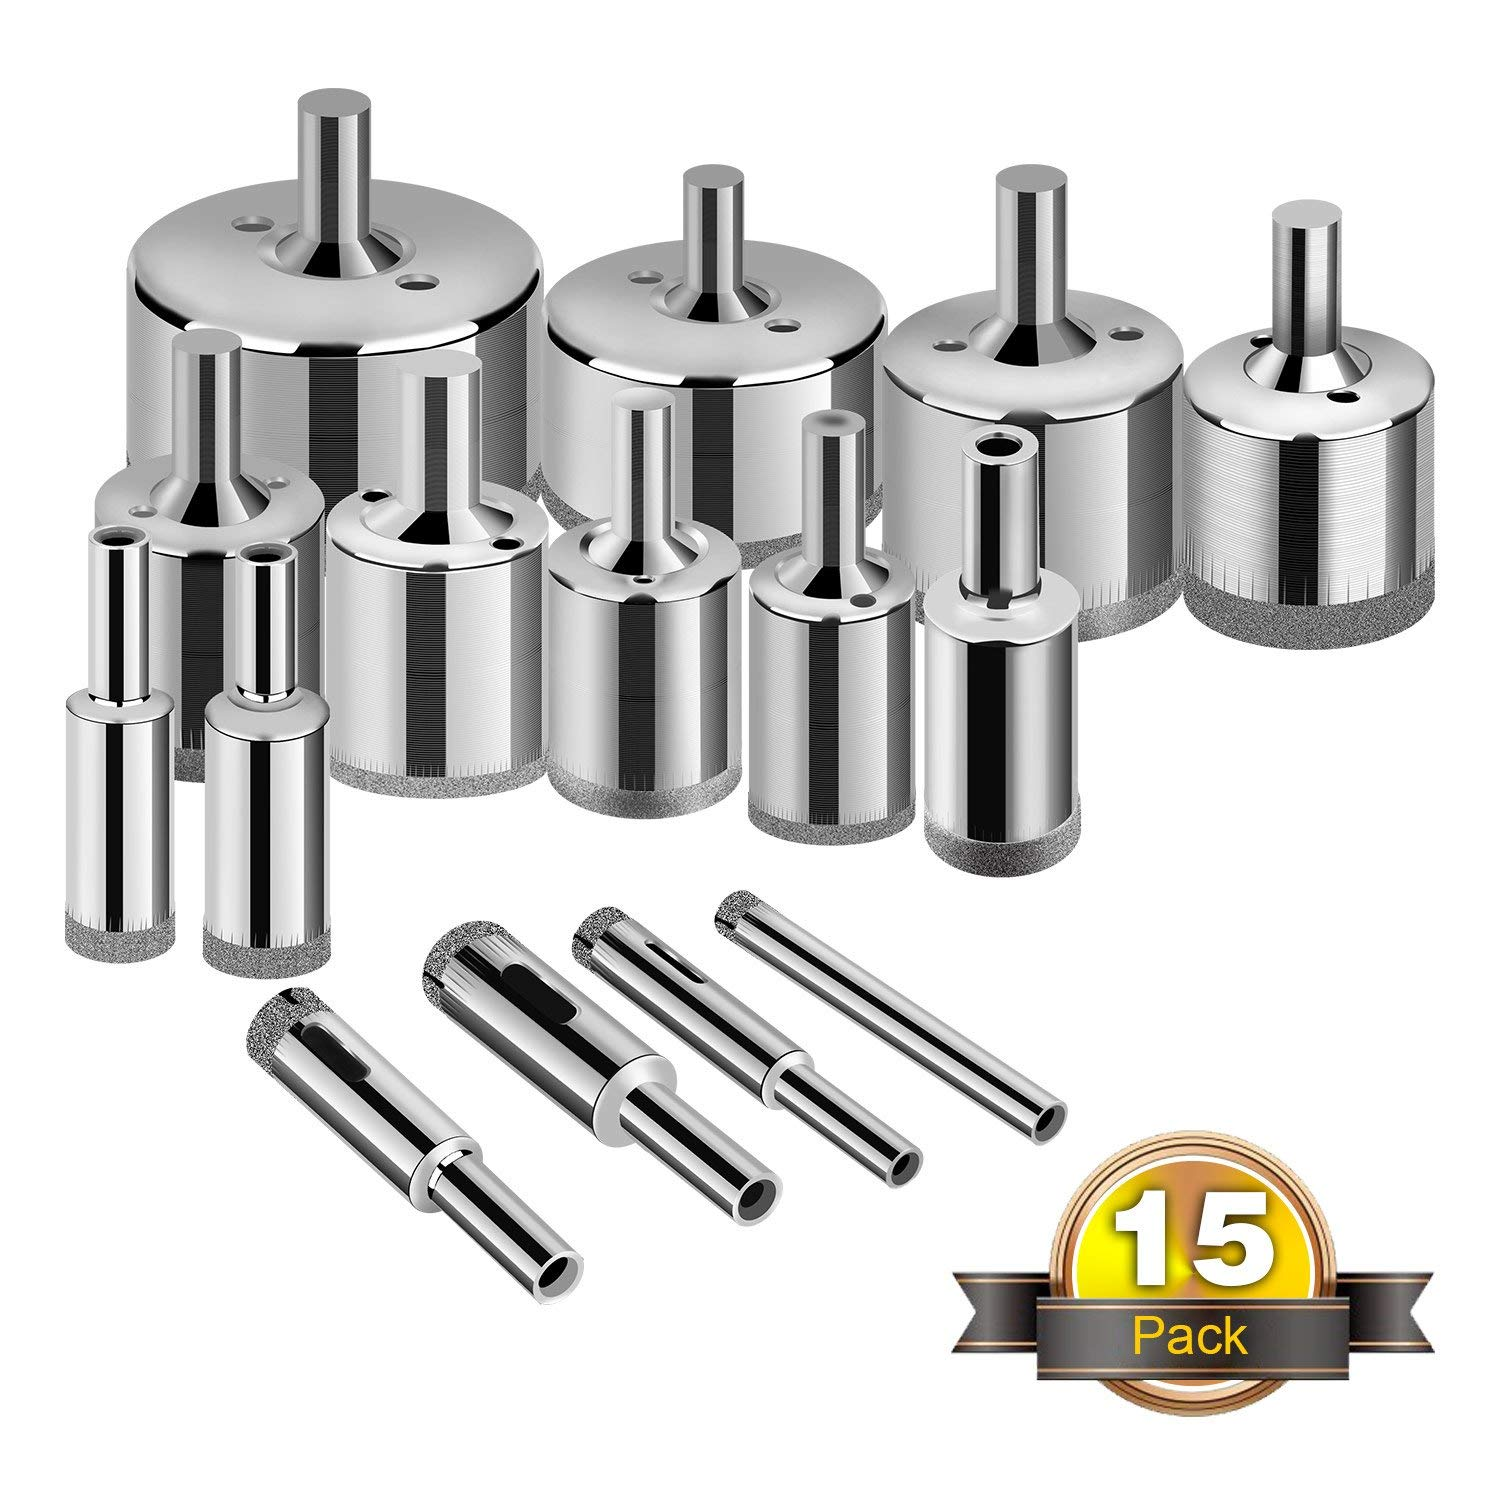 Glass Drill Bits - 15pcs Diamond Coating Hole Saw Drill Bit for Glass, Ceramics, Porcelain, Ceramic Tile, Marble, Granite, 6-50mm Kit Set Hollow Core Extractor Remover Tool